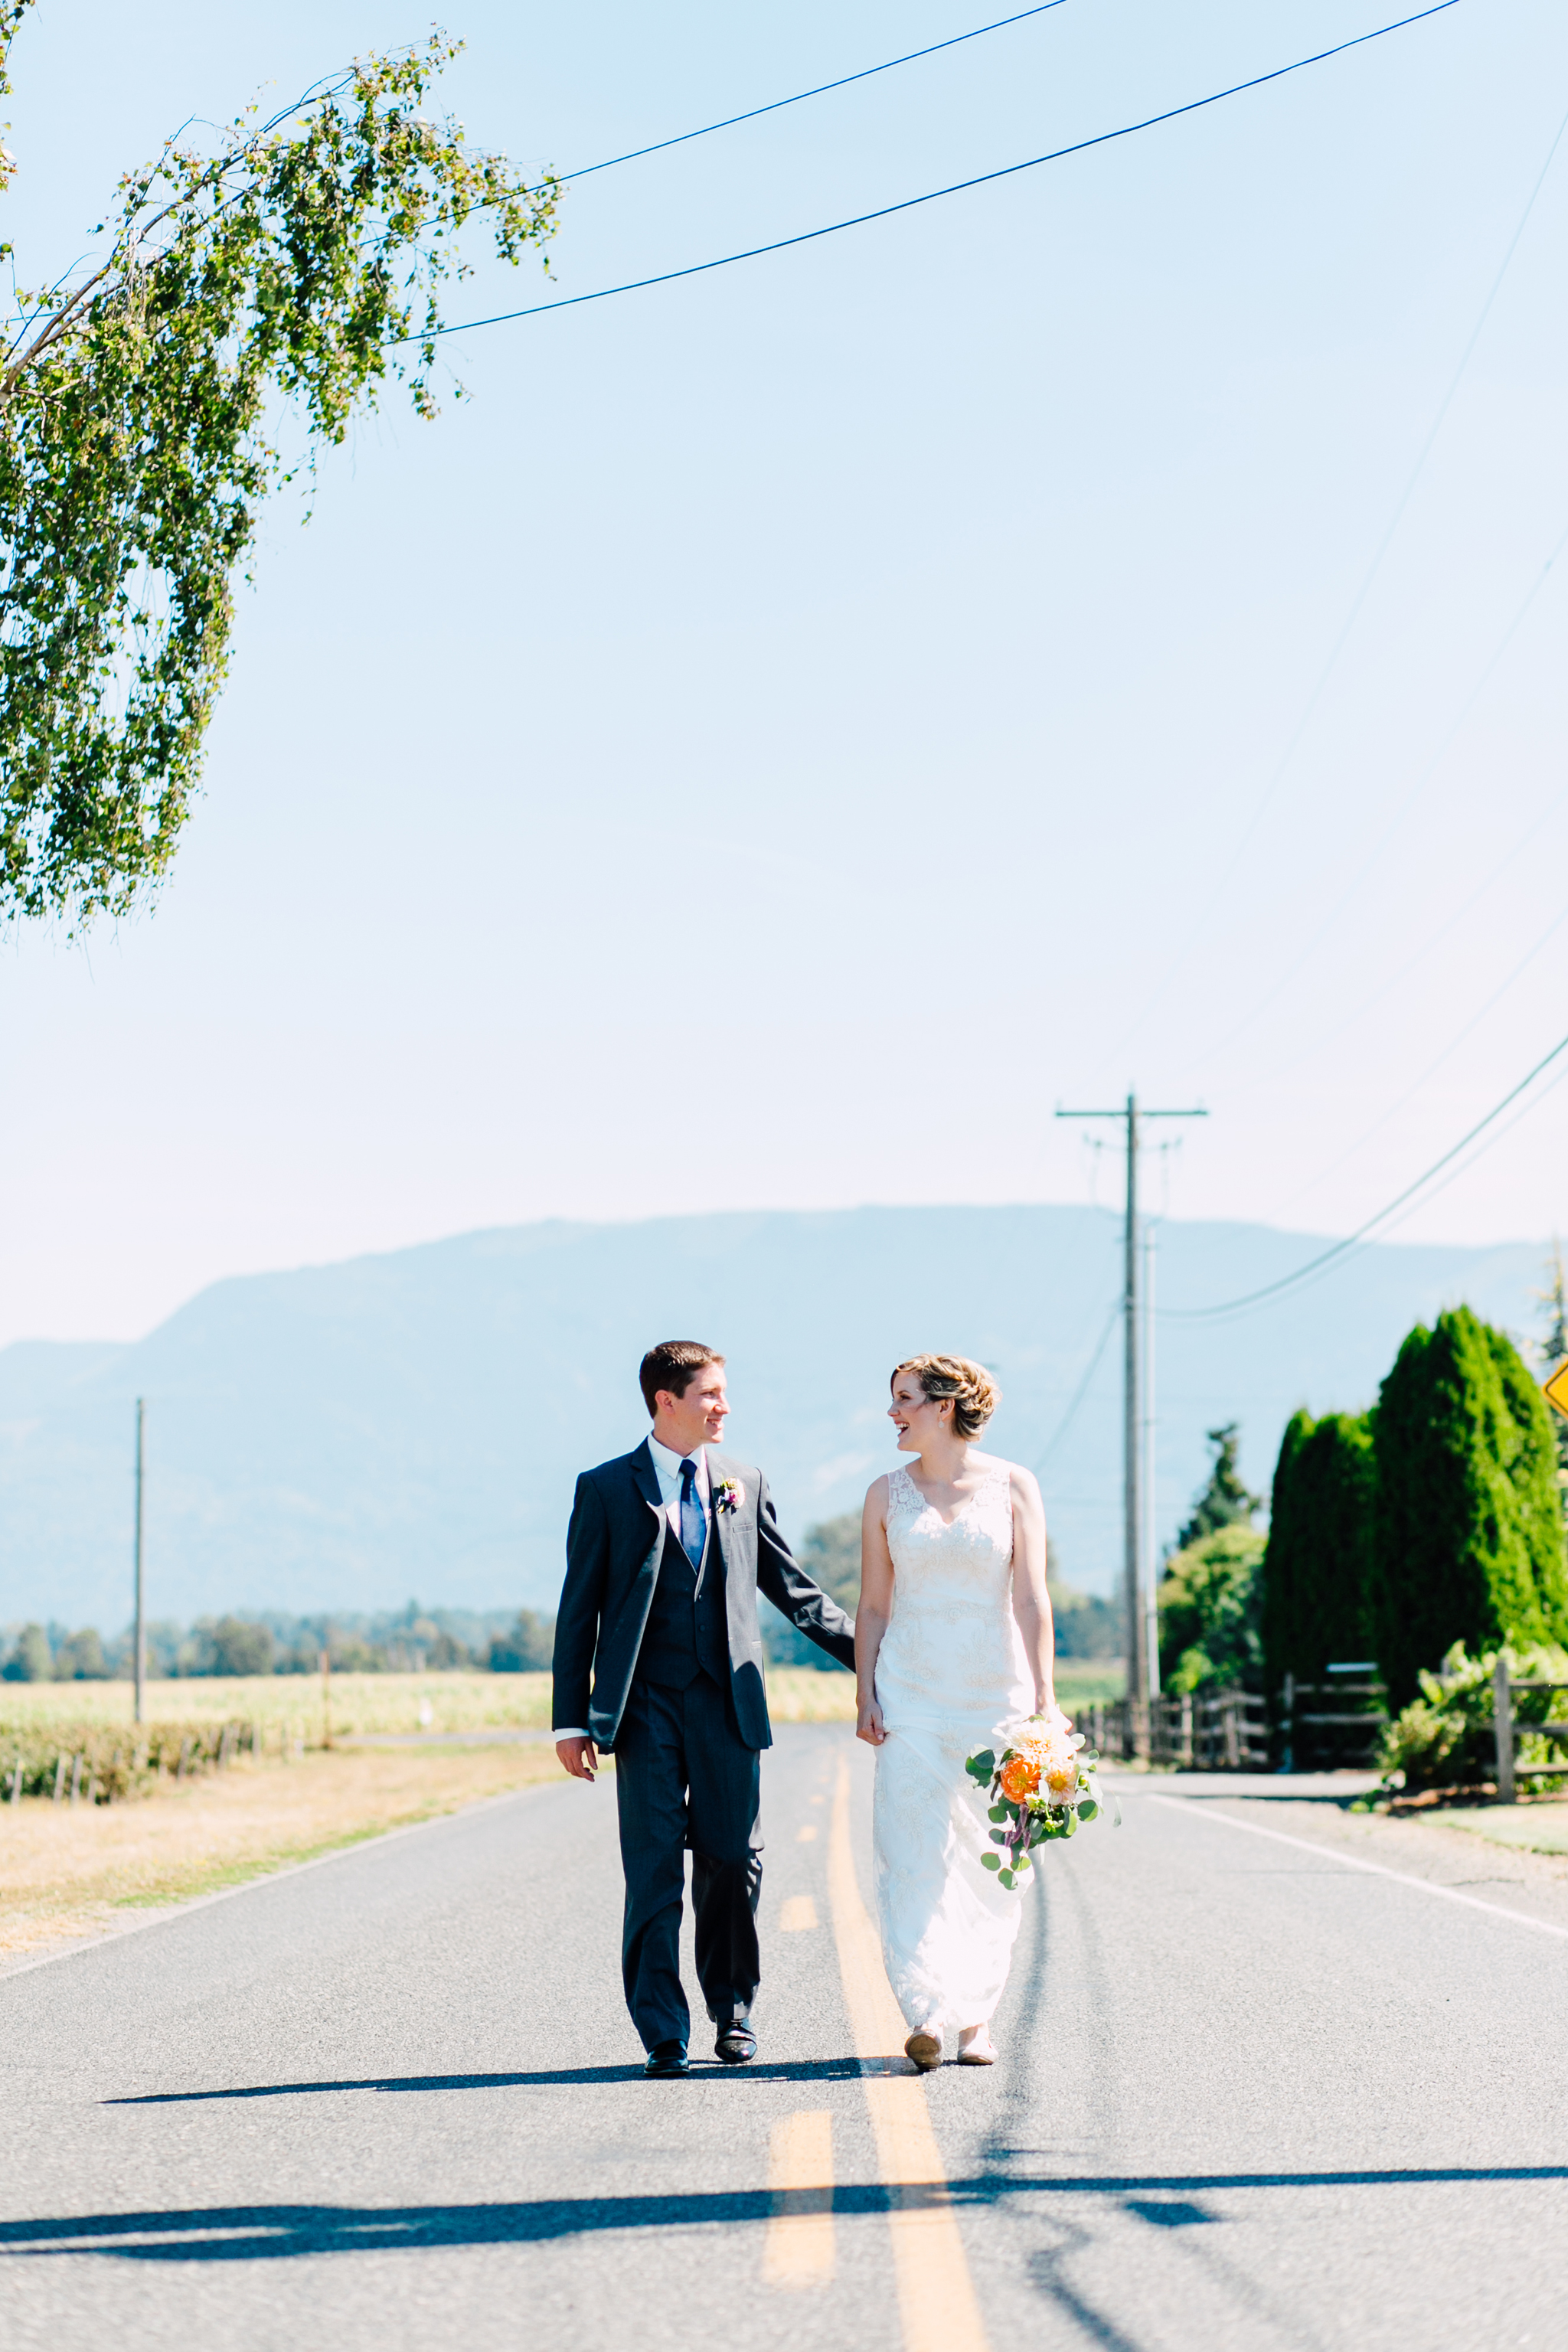 023-bellingham-wedding-photographer-samson-winery-katheryn-moran.jpg